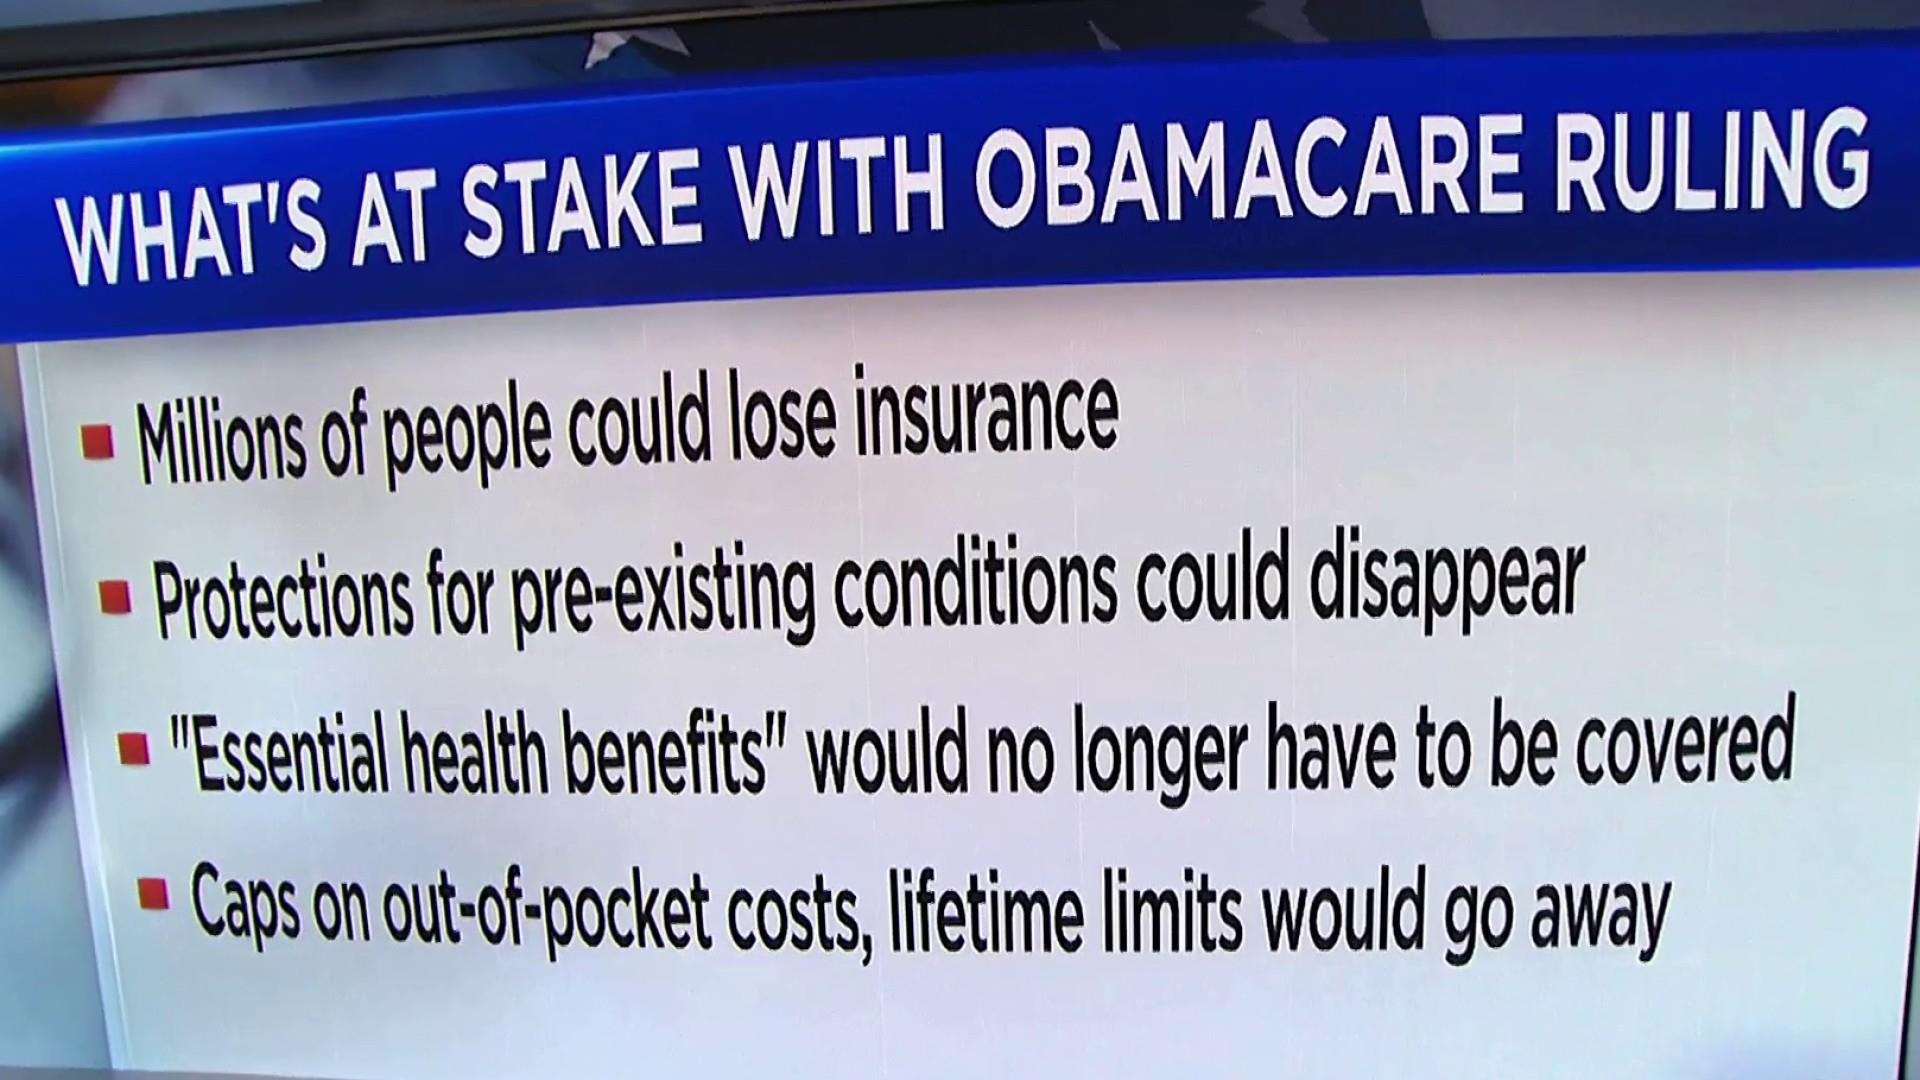 House Democrats try to join legal effort to save Obamacare